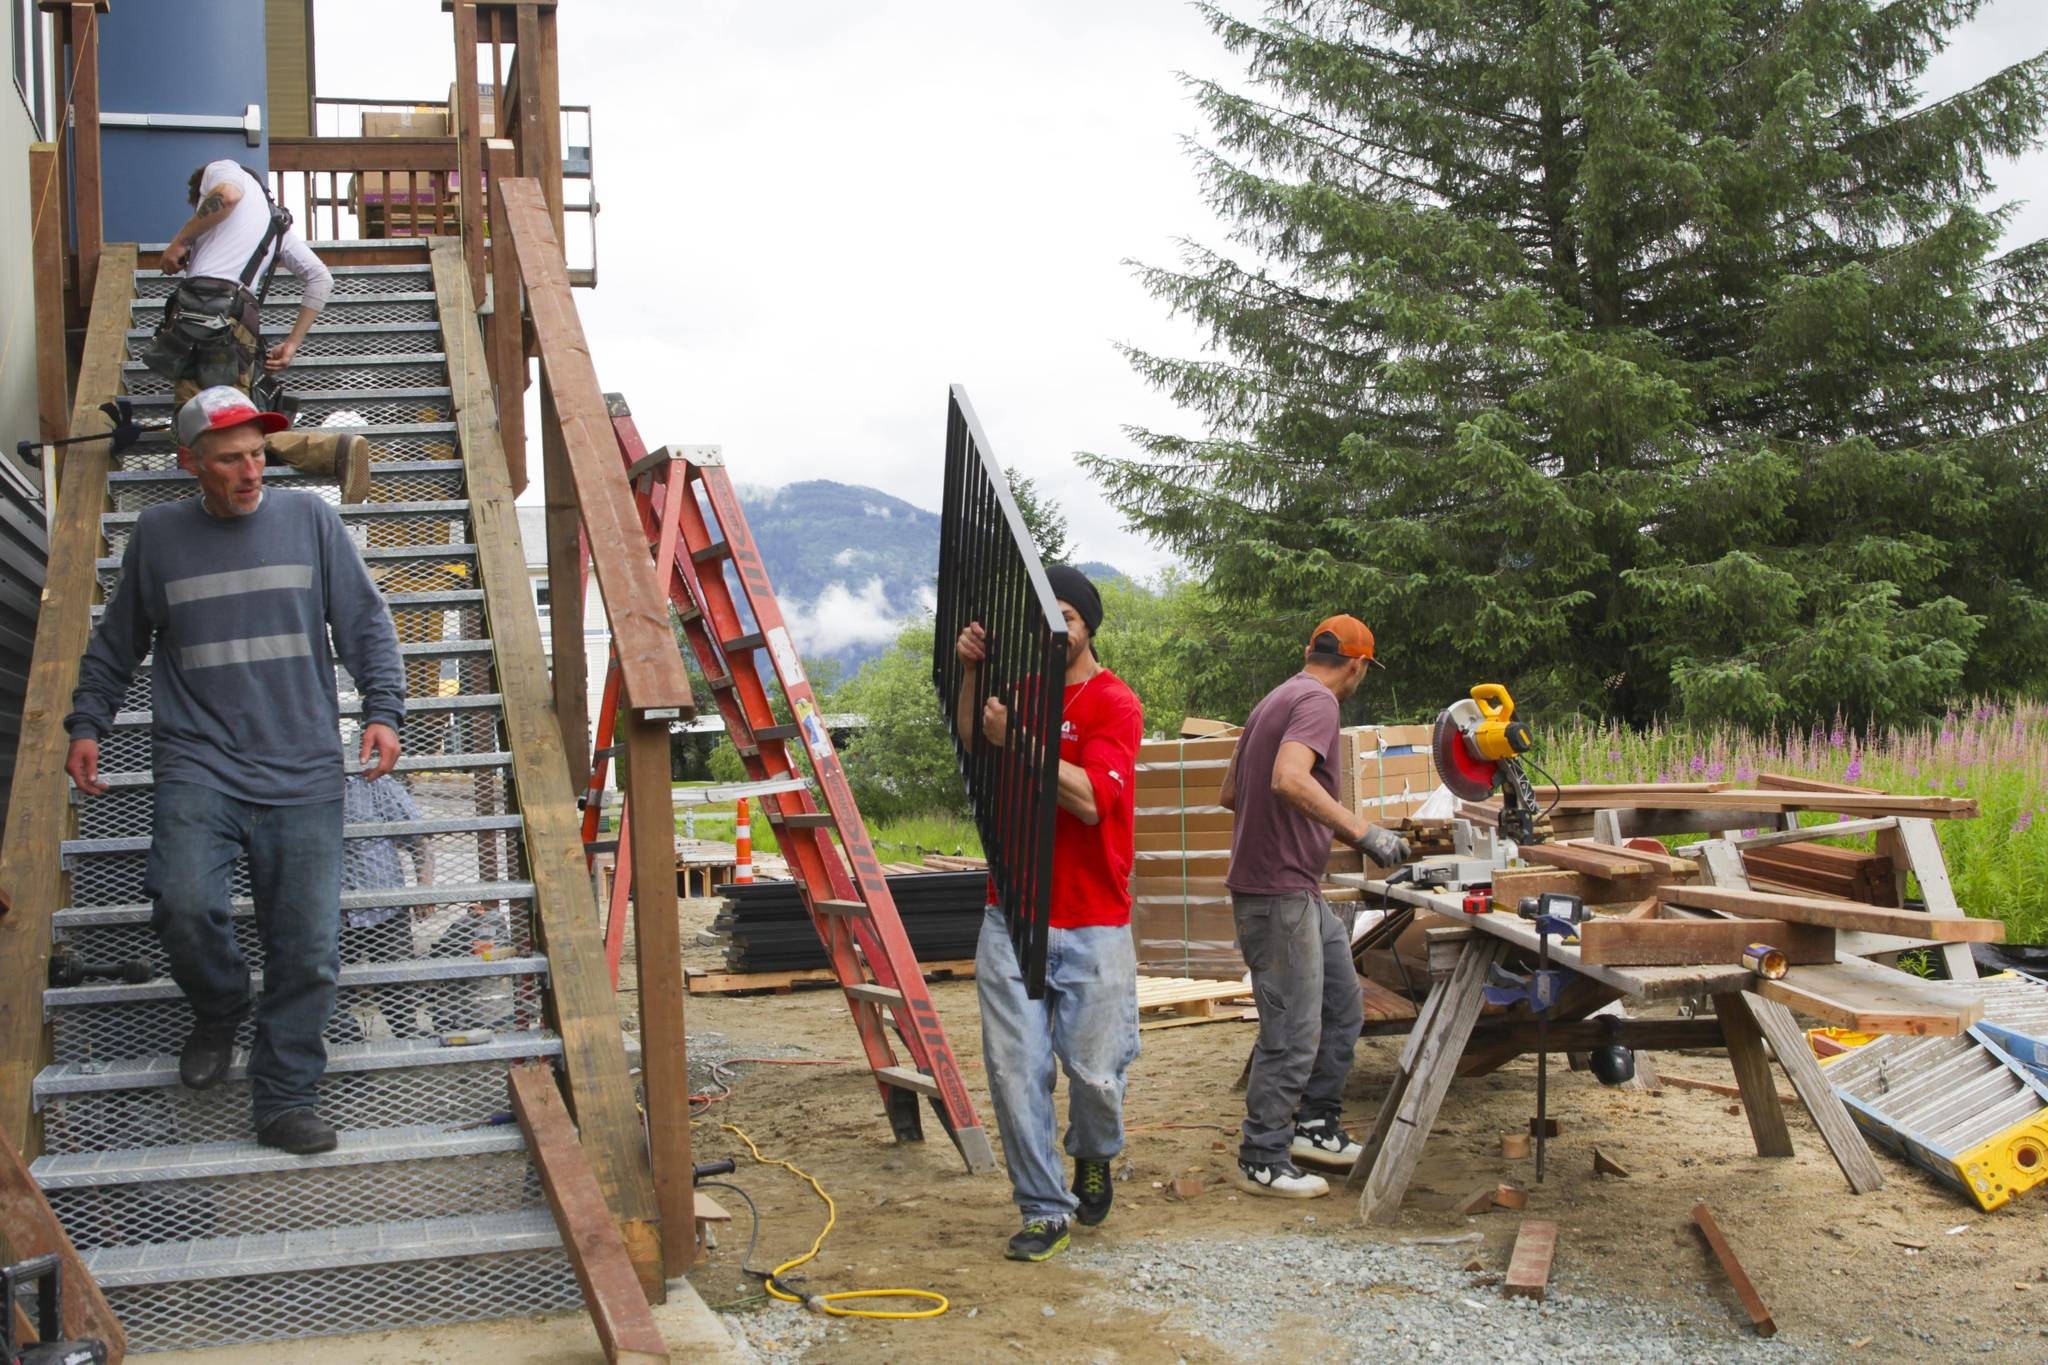 Michael S. Lockett / Juneau Empire  The new Glory Hall, located near the airport, is set to open on Thursday, July 22, 2021. It will form a component of a growing social services campus.